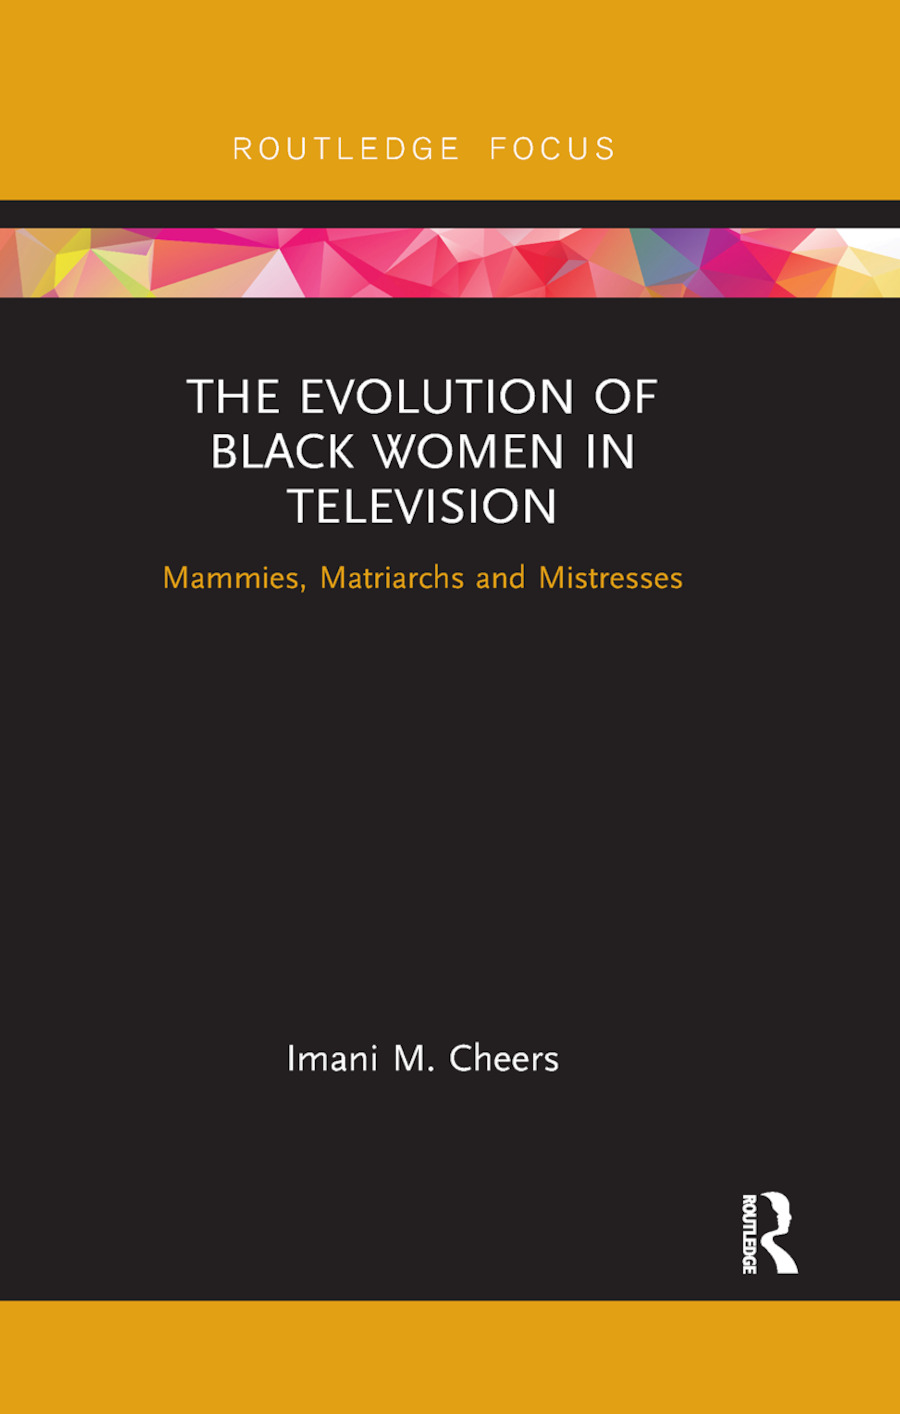 The Evolution of Black Women in Television: Mammies, Matriarchs and Mistresses book cover